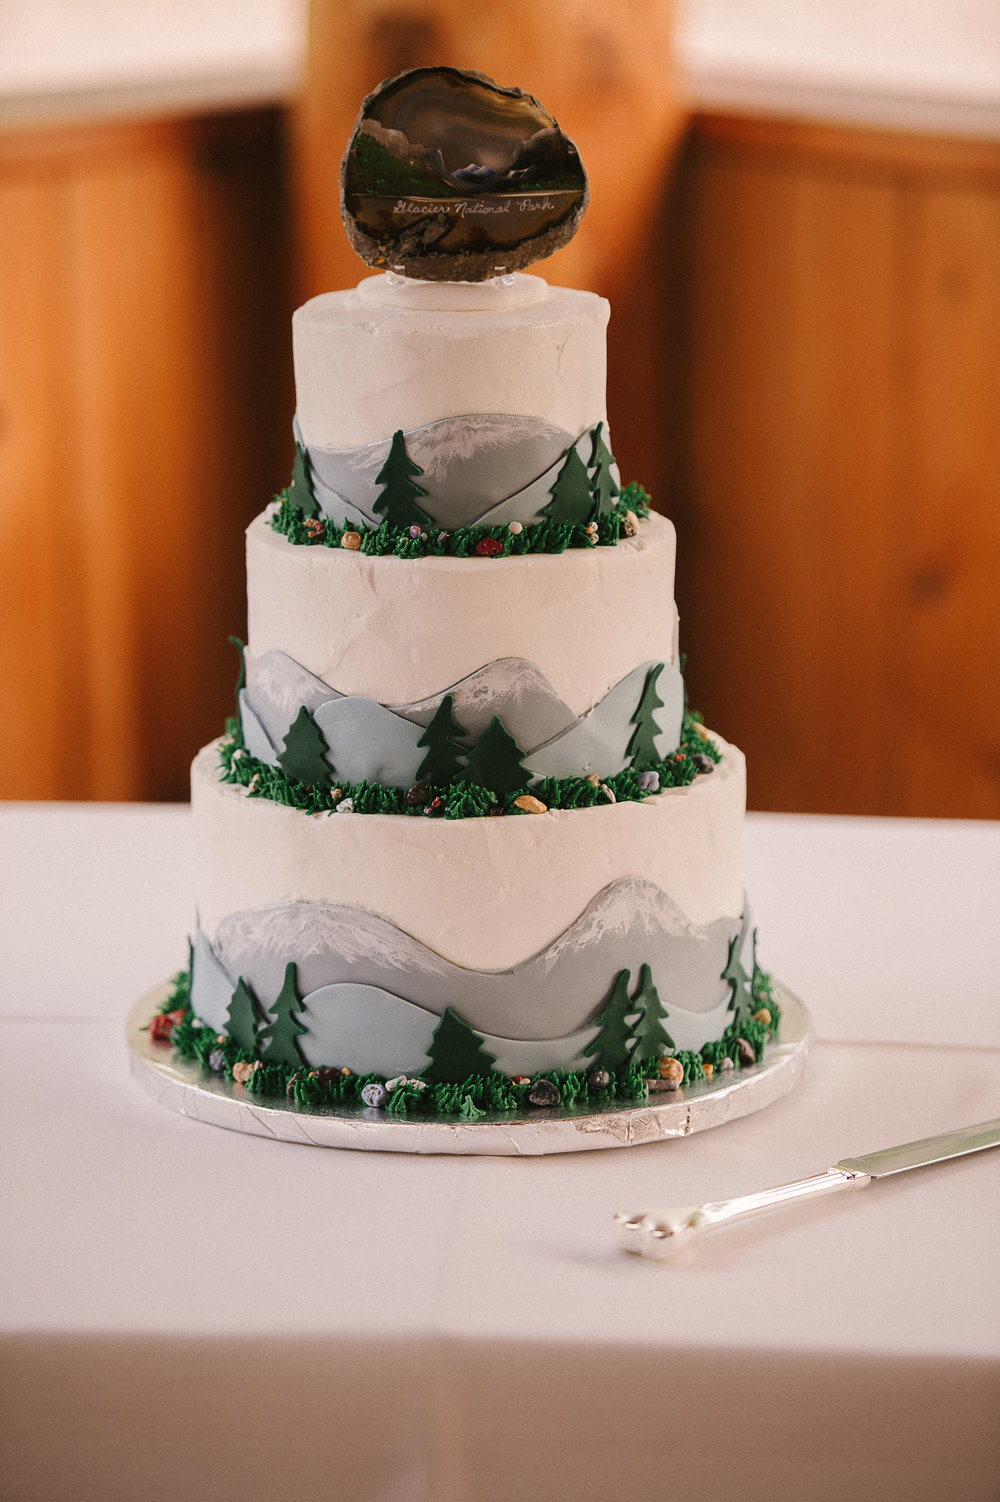 Glacier Montana Wedding_Elly Maurer + Frankie Dashiell Wedding_Beautiful Outdoor Wedding_Kelsey Lane Photography-5359-2.jpg